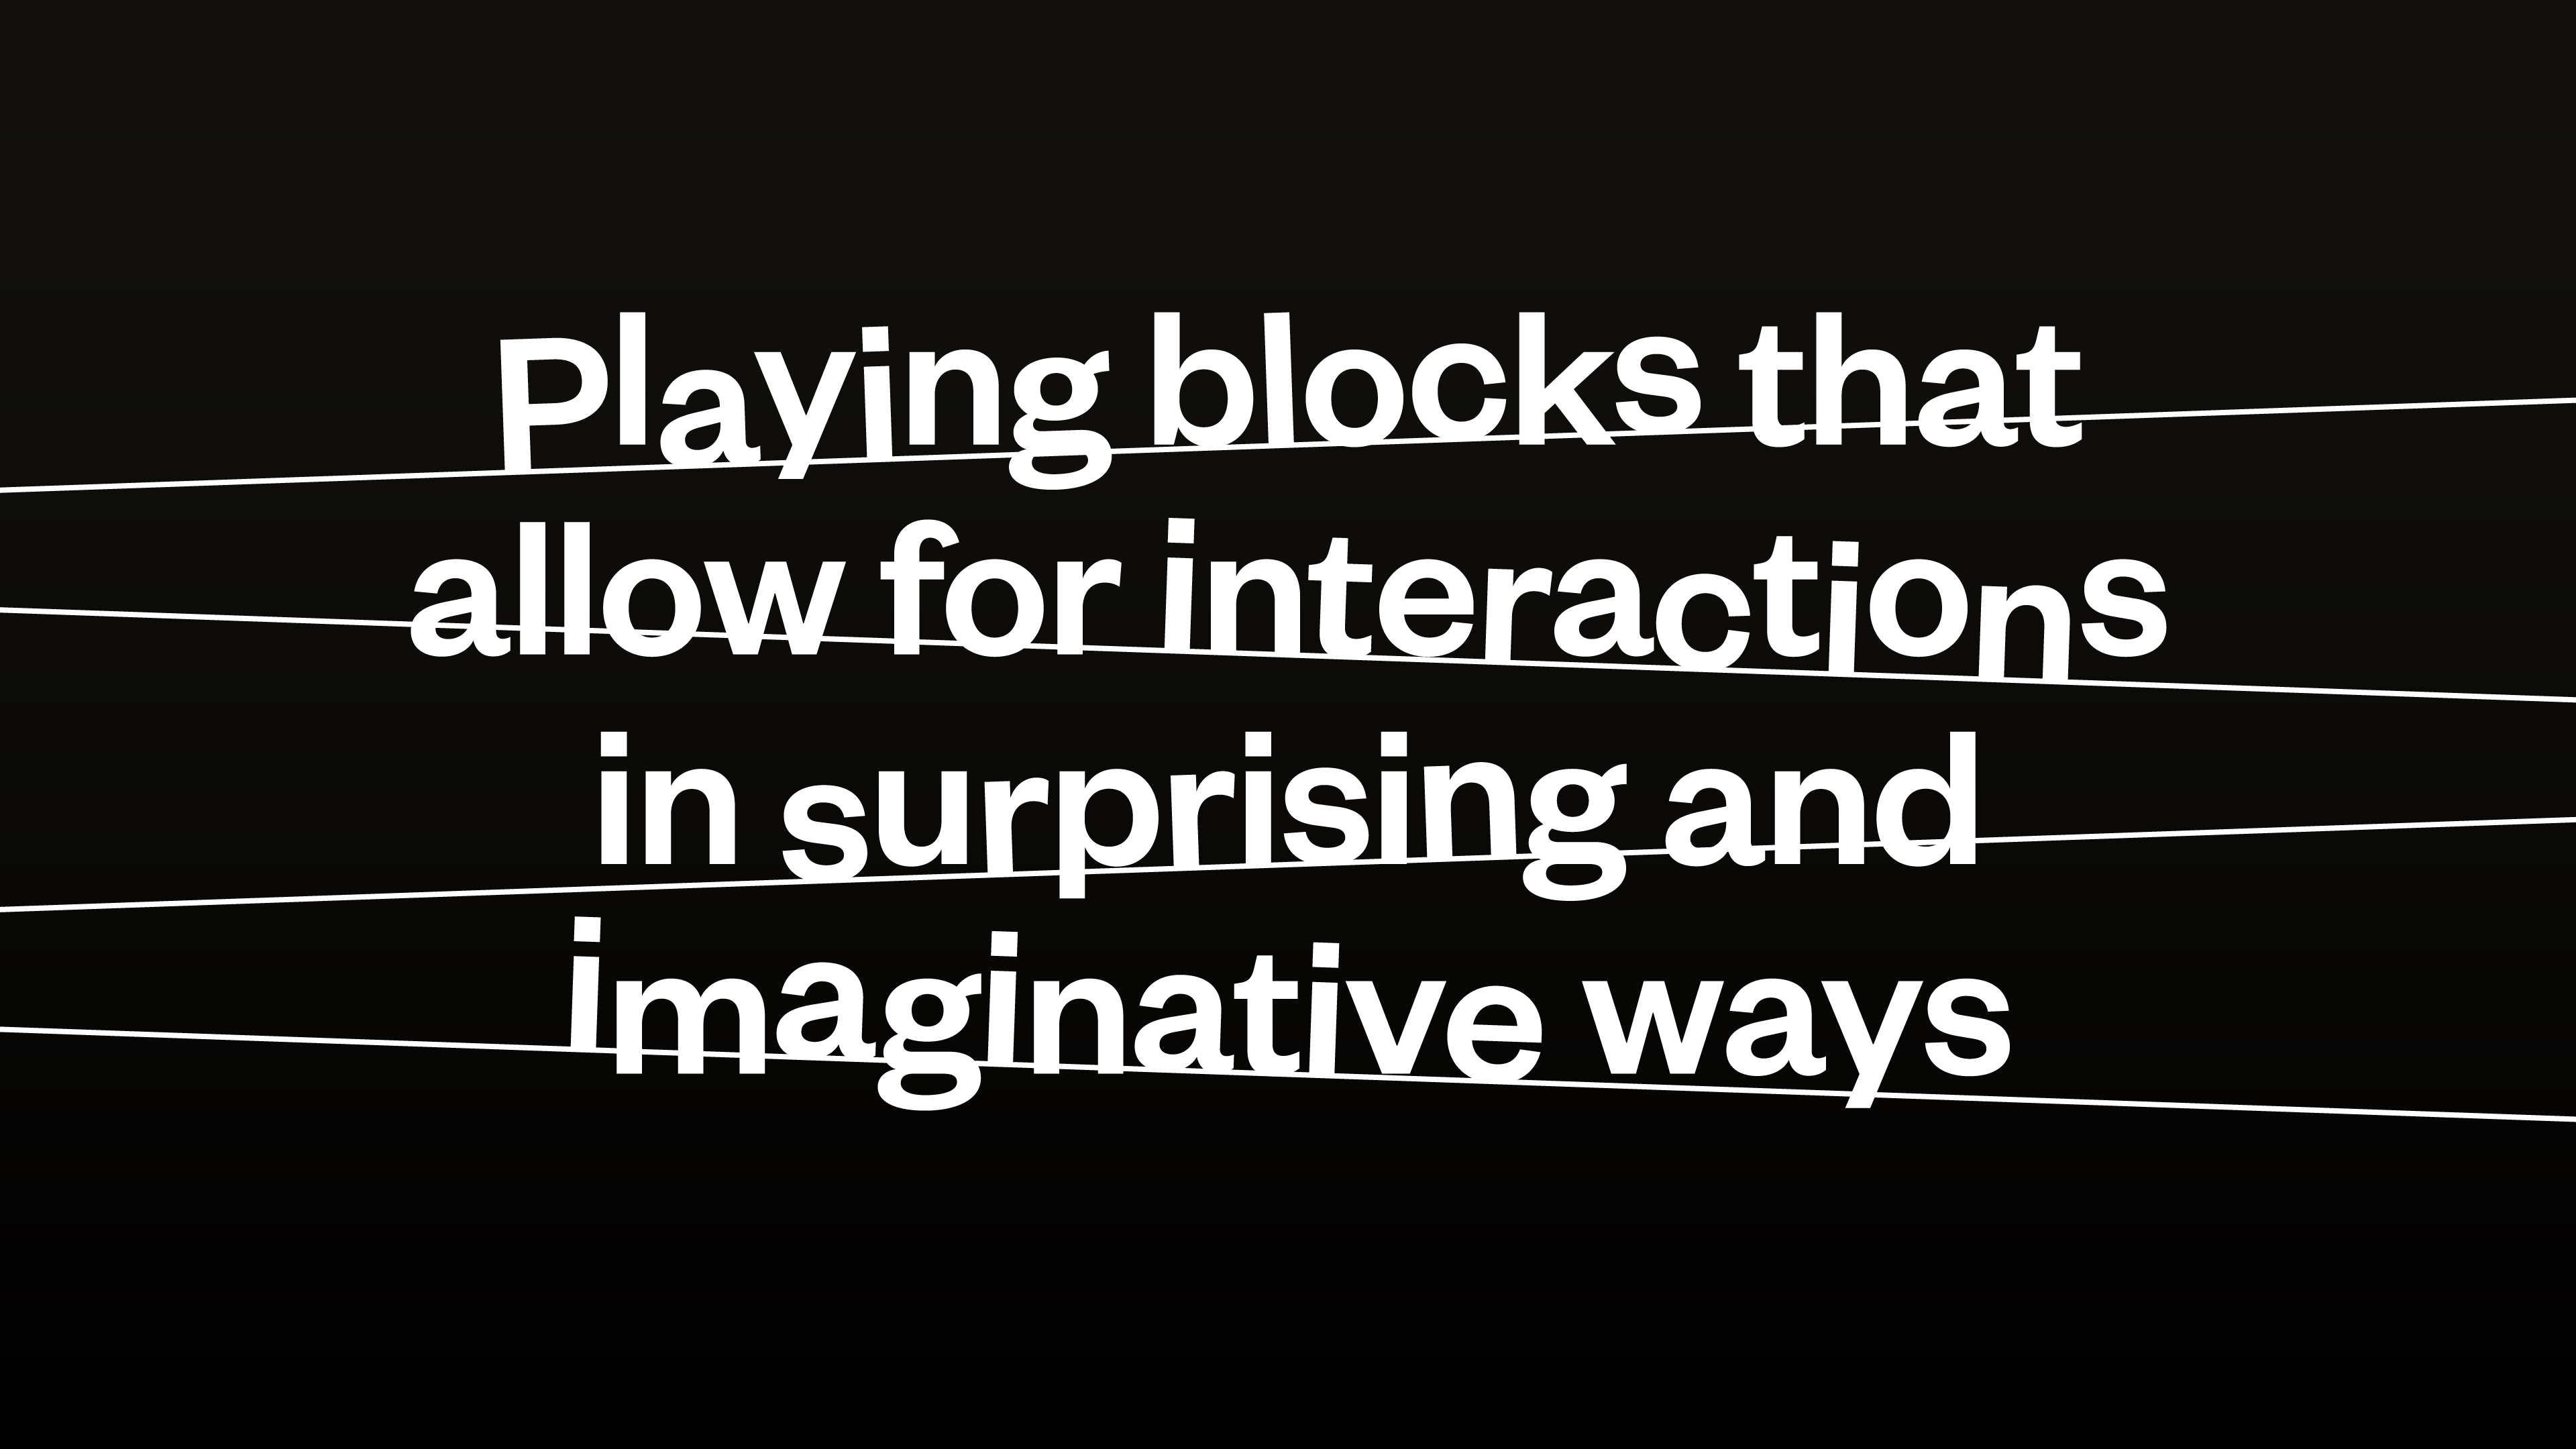 OddBlocks: Playing blocks that allow for interactions in surprising and imaginative ways.